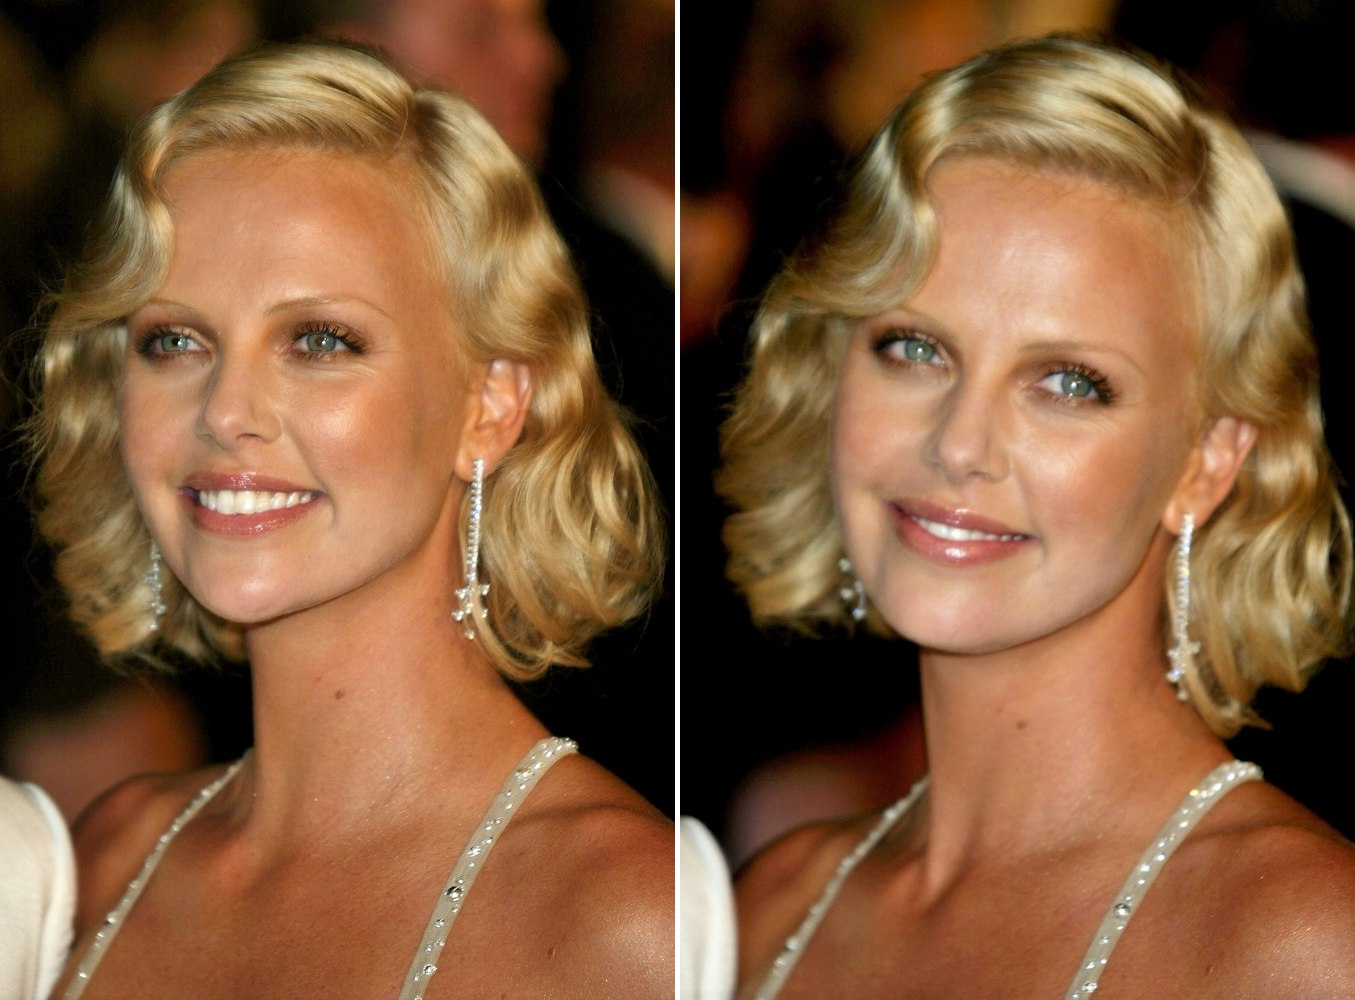 Hair Style Of Death: Charlize Theron Sporting An Old Fashioned Hairstyle With Waves